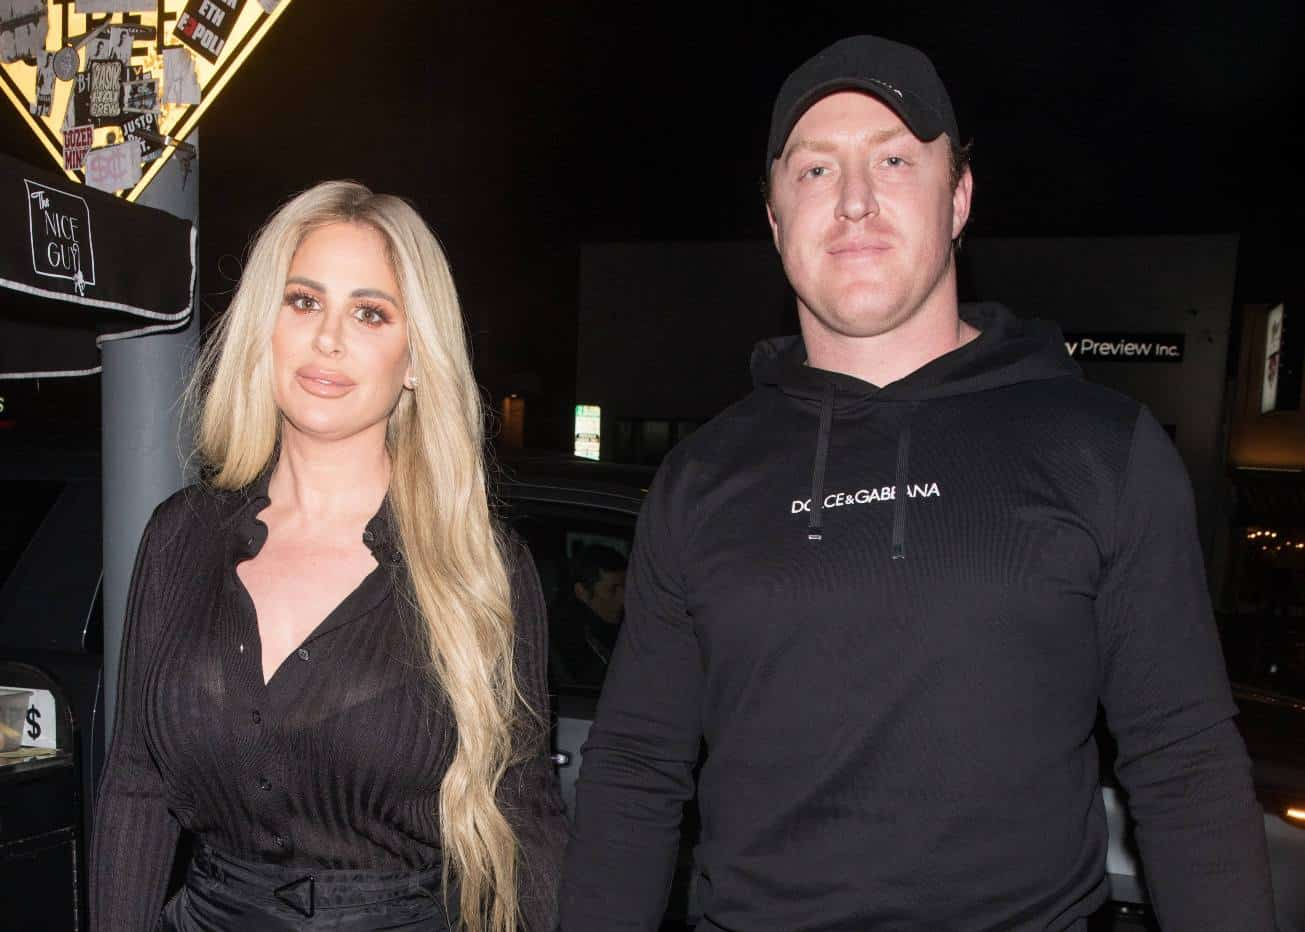 Kim Zolciak reveals what Kroy Biermann does for work, how much he earned in the NFL, denies a dating relationship and talks about the RHOA regrets